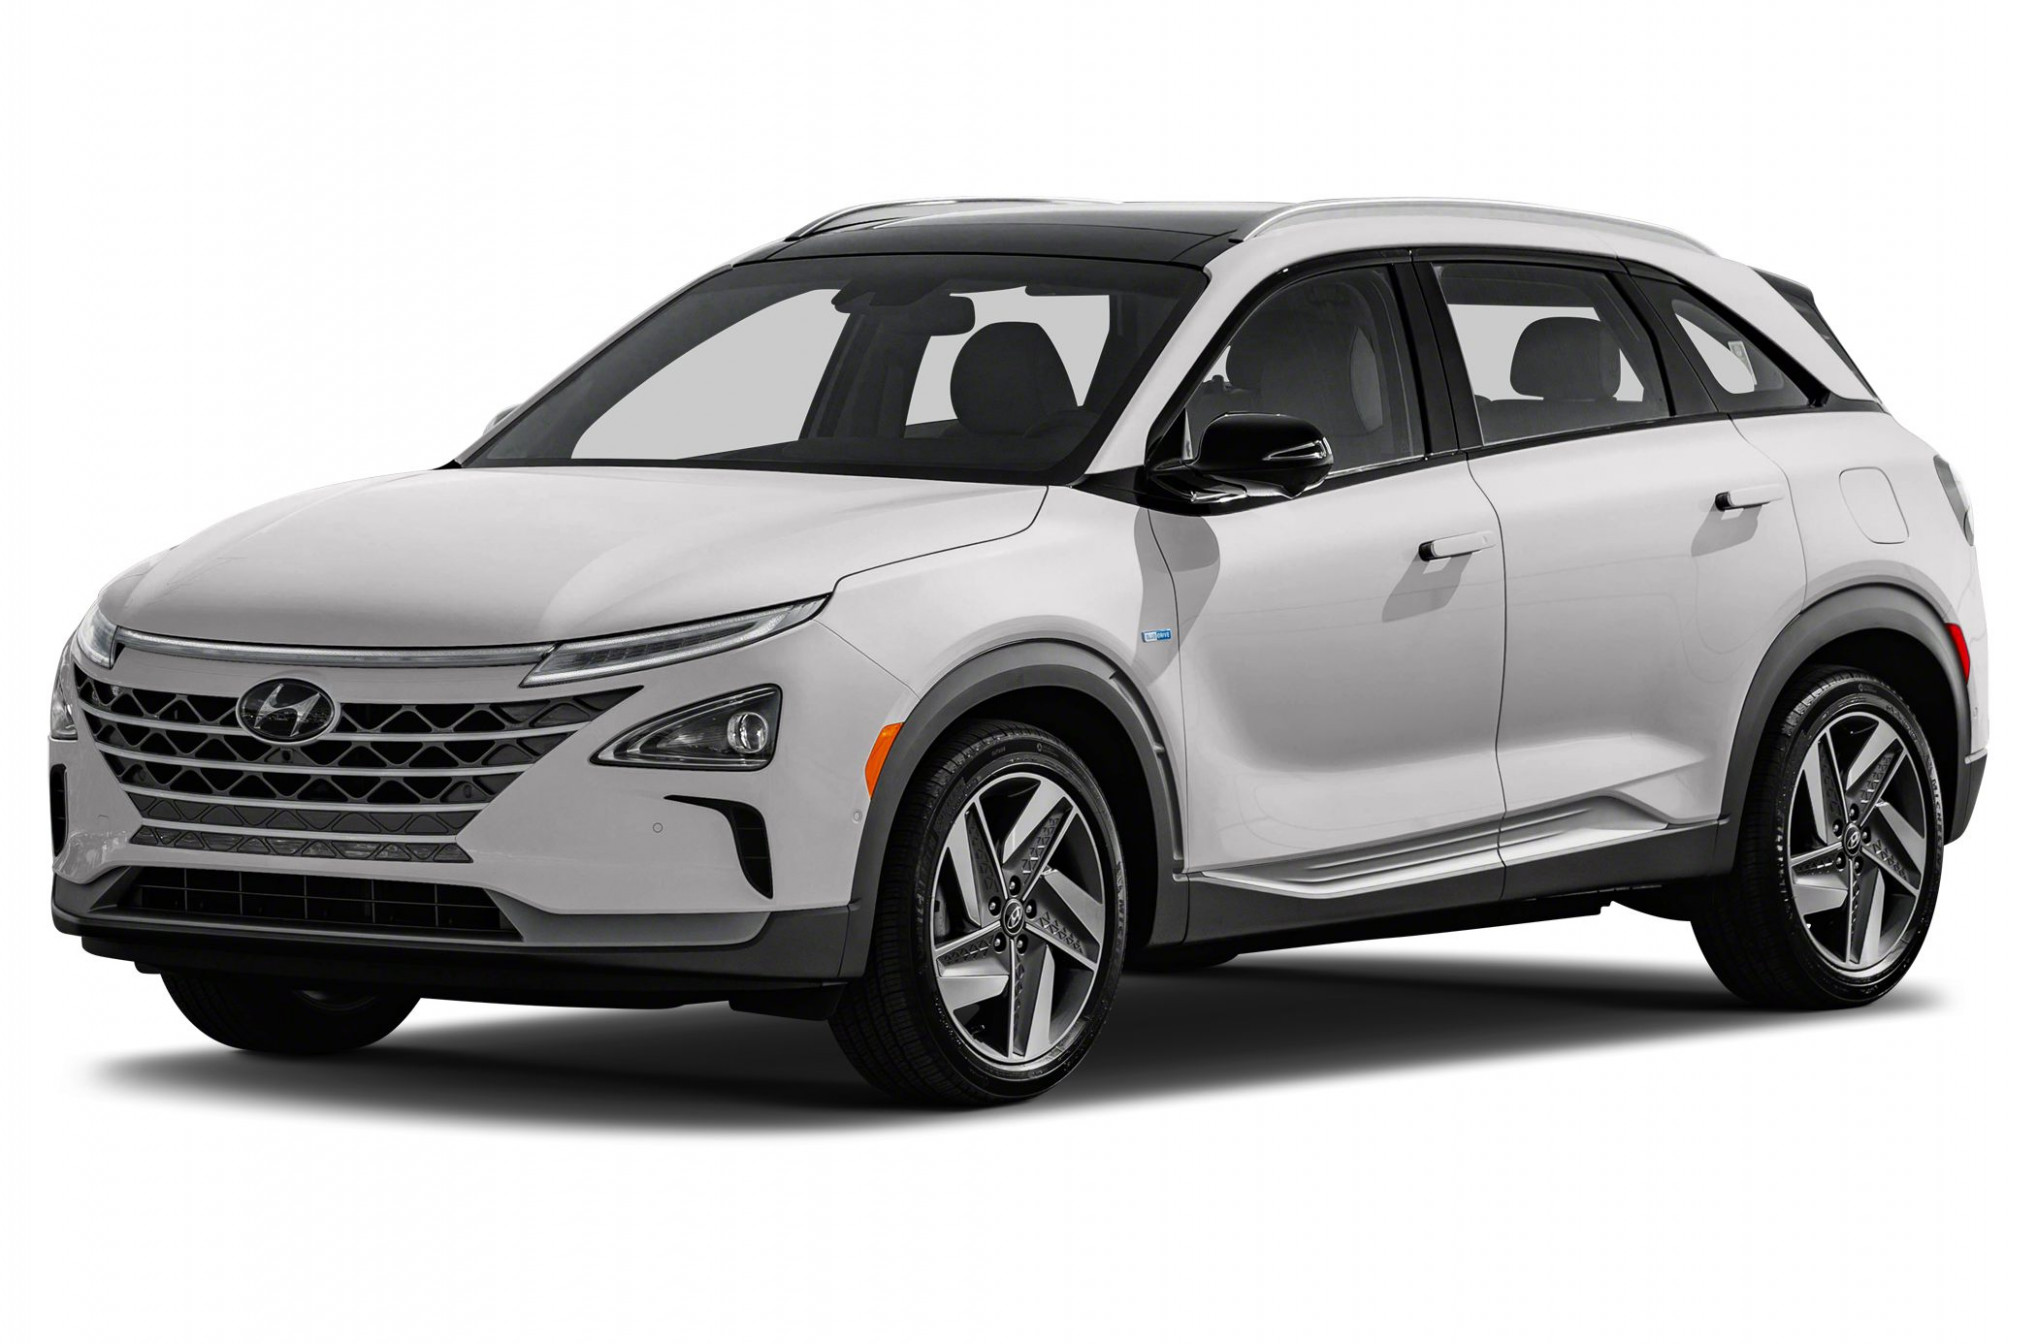 8 Hyundai NEXO for Sale - 2020 hyundai nexo for sale